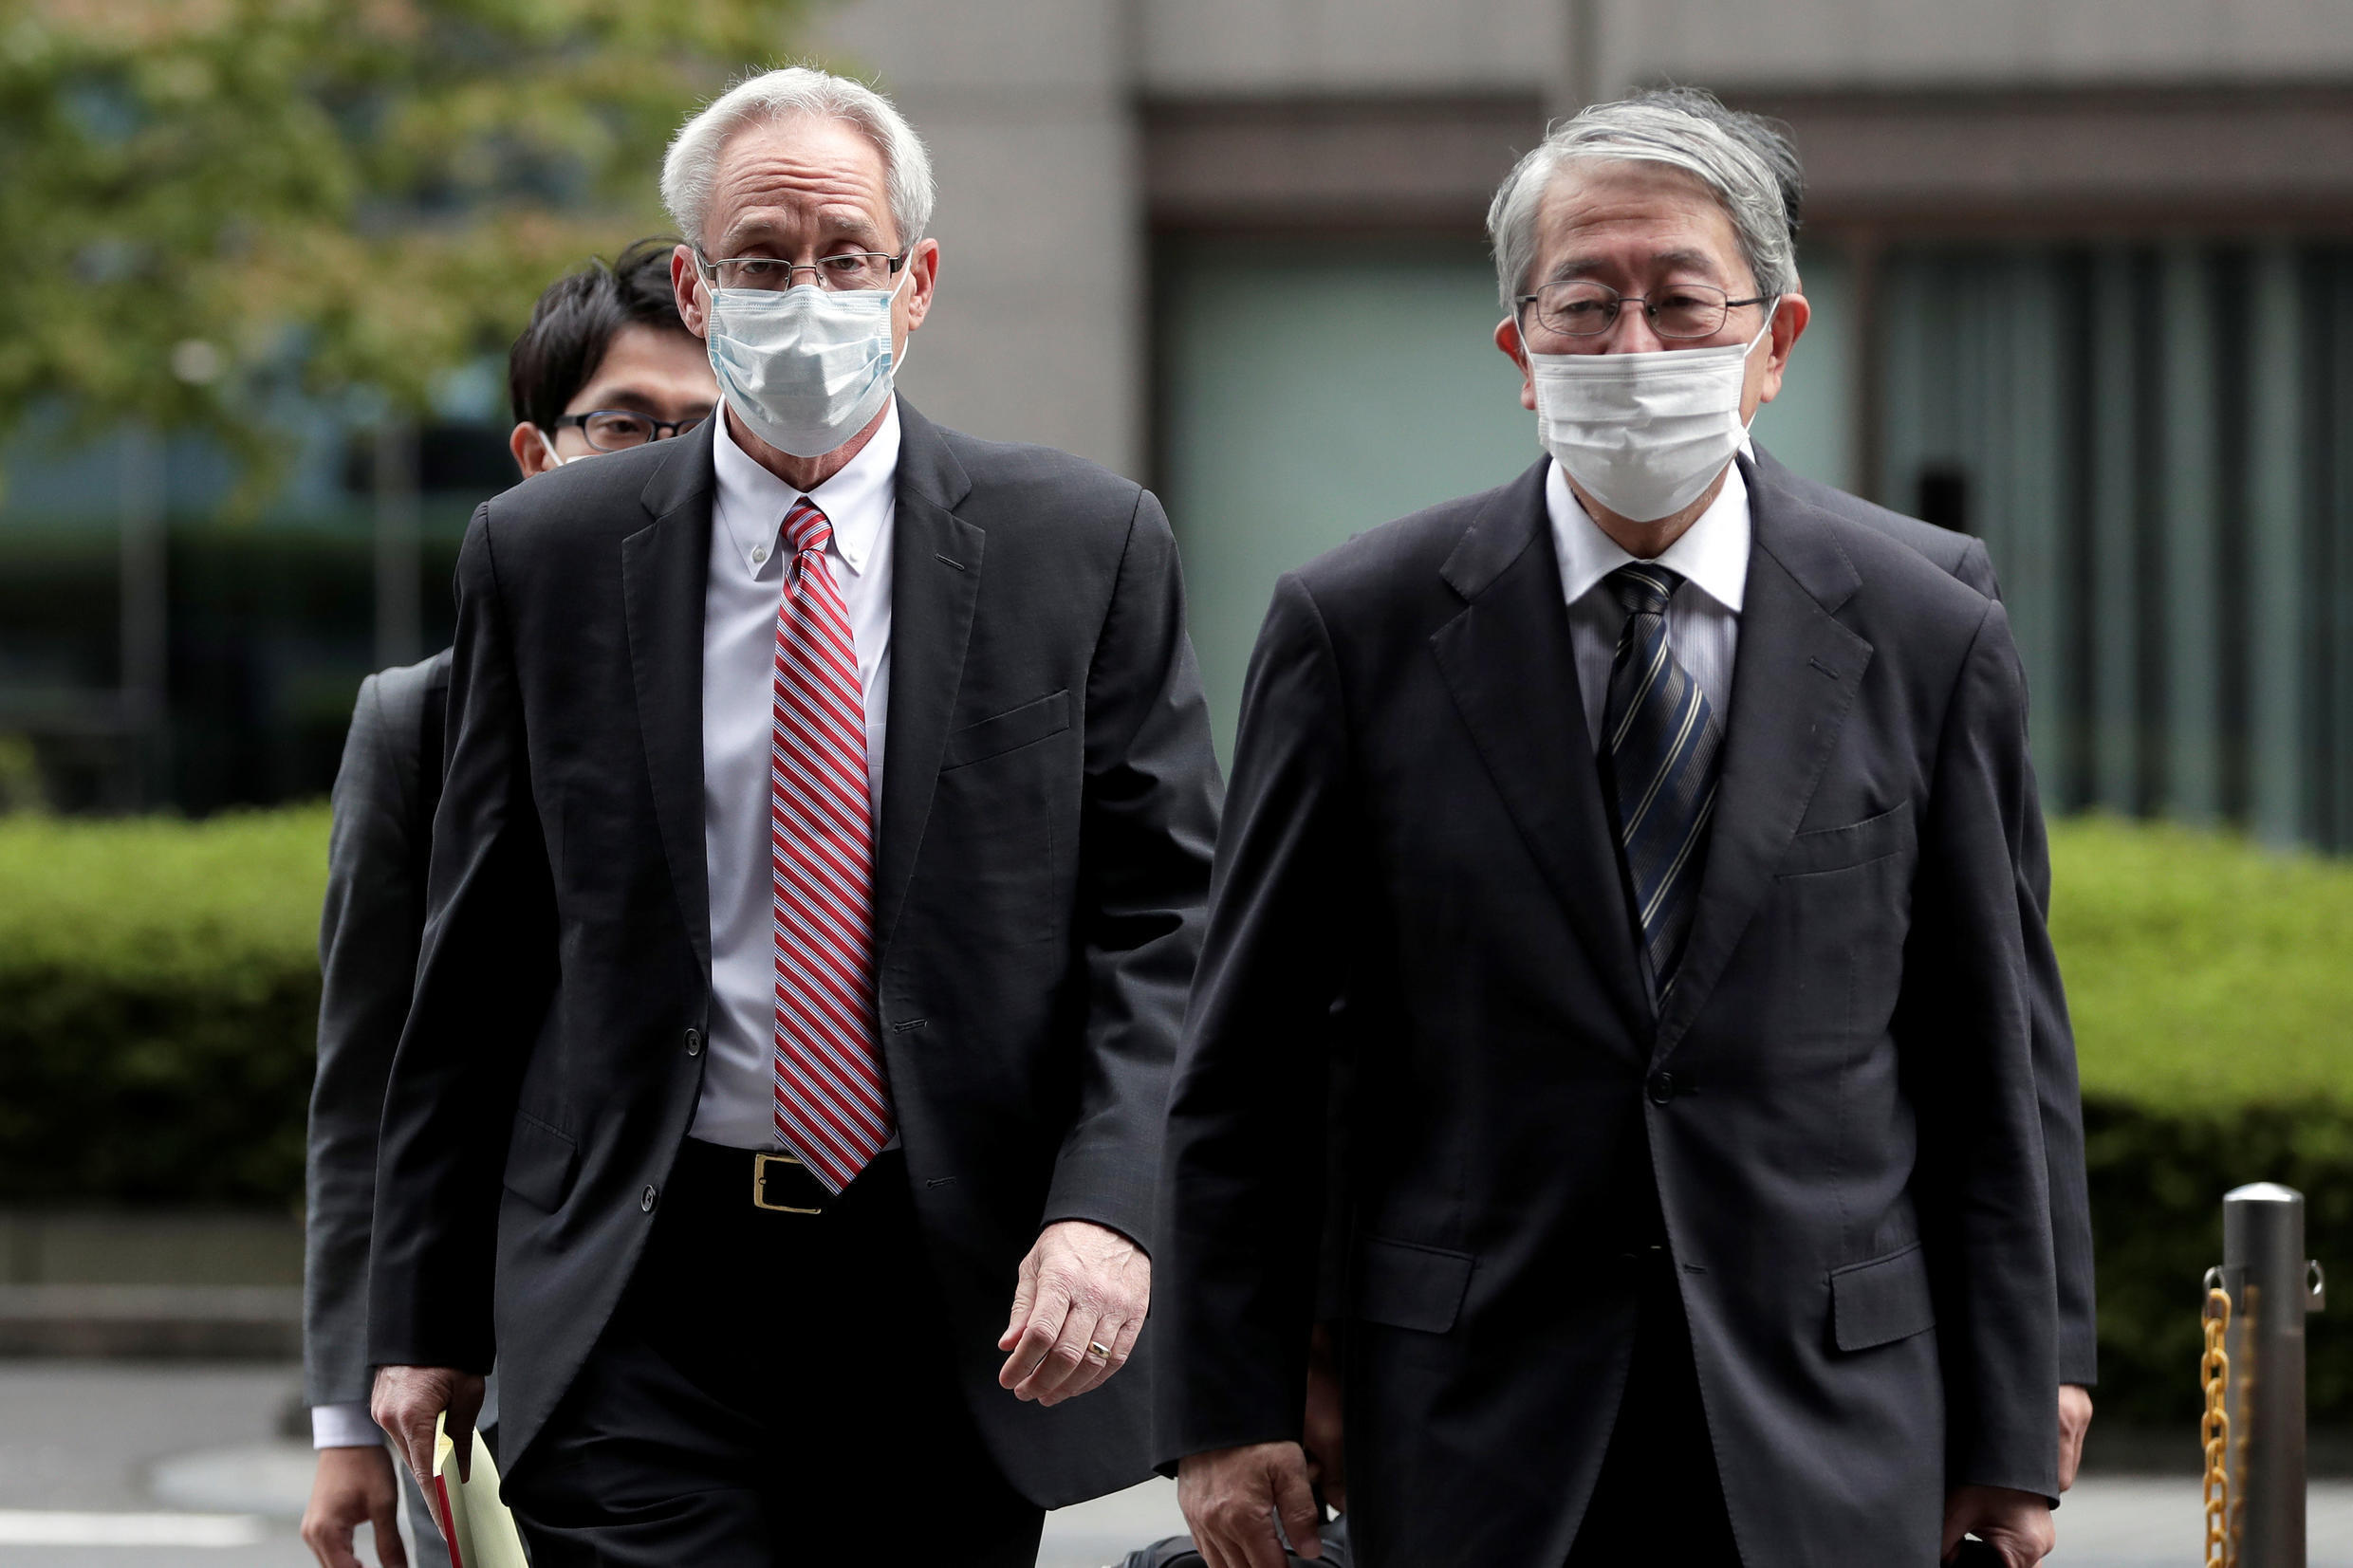 Greg Kelly (L), former representative director of Nissan Motor Co., arrives for the first trial hearing at the Tokyo District Court in Tokyo, Japan, September 15, 2020. Greg Kelly (L), former representative director of Nissan Motor Co., arrives for the first trial hearing at the Tokyo District Court in Tokyo, Japan, September 15, 2020.